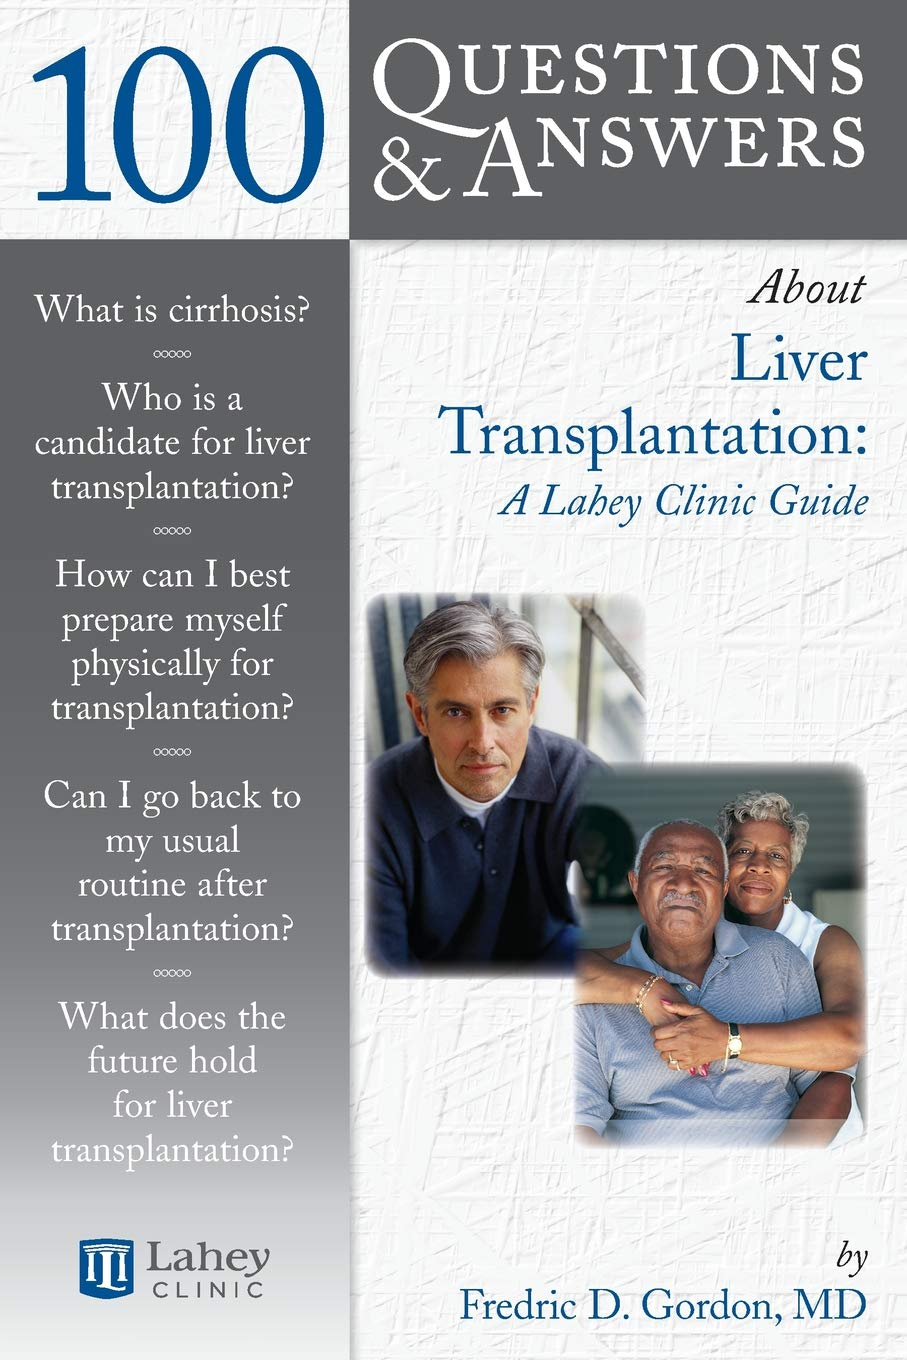 100 Questions & Answers About Liver Transplantation: A Lahey Clinic Guide  Paperback – Sep 8 2006